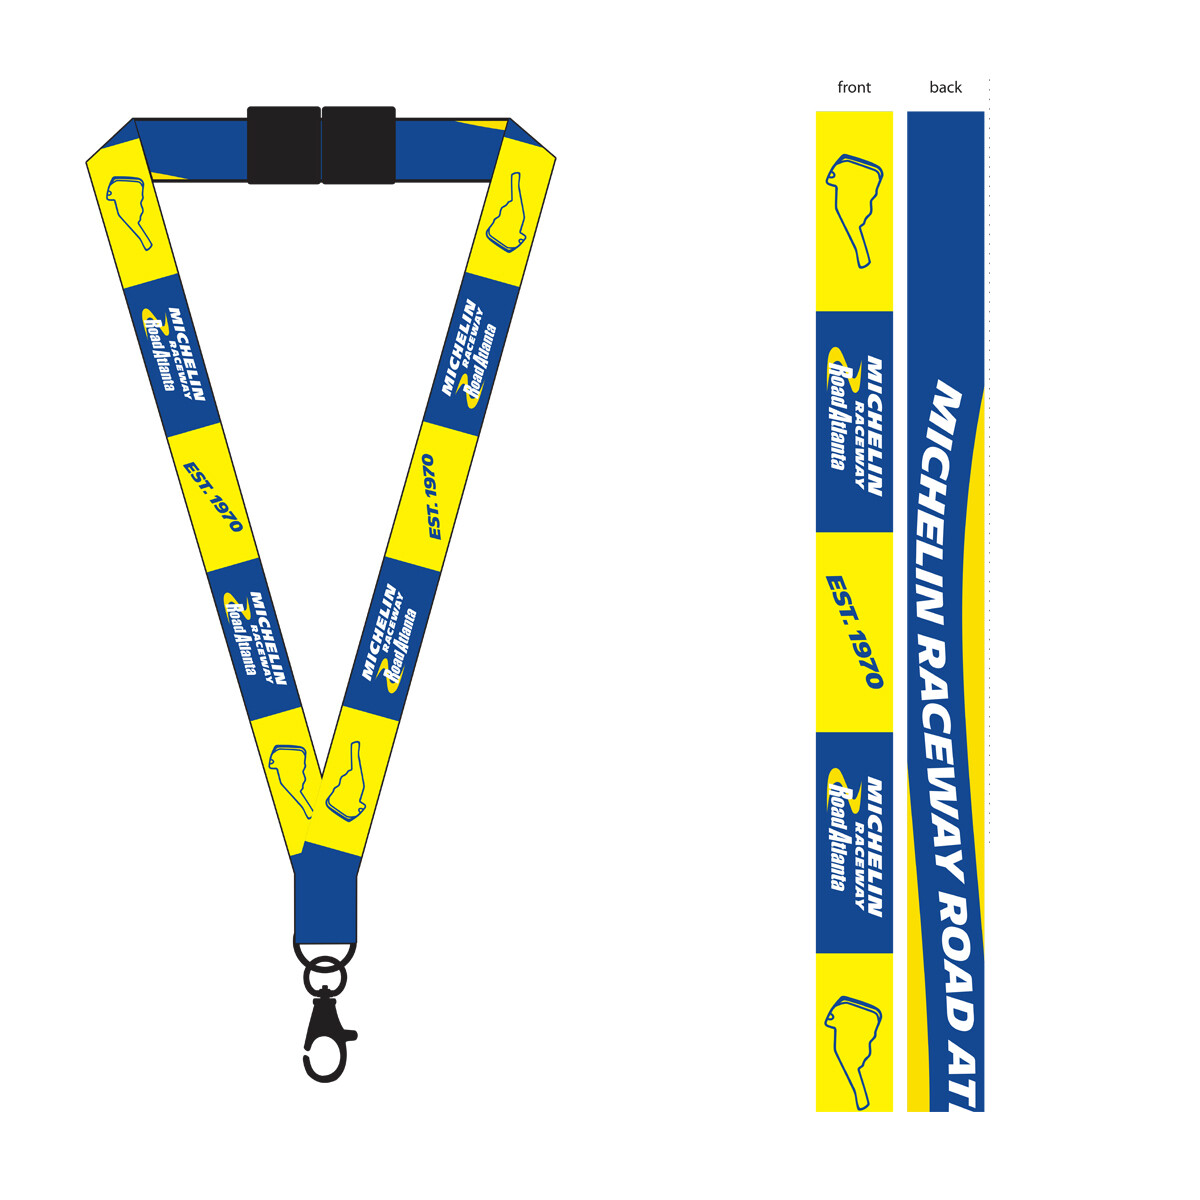 Michelin Raceway Road Atlanta Lanyard - Blue/Gold With Two-sided Print